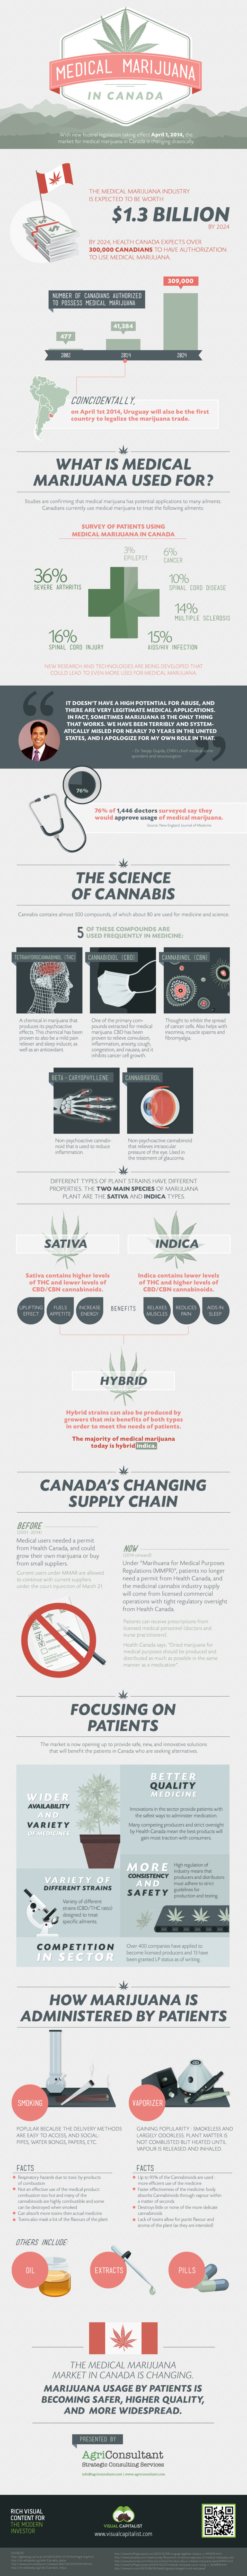 Medical Marijuana in Canada Infographic